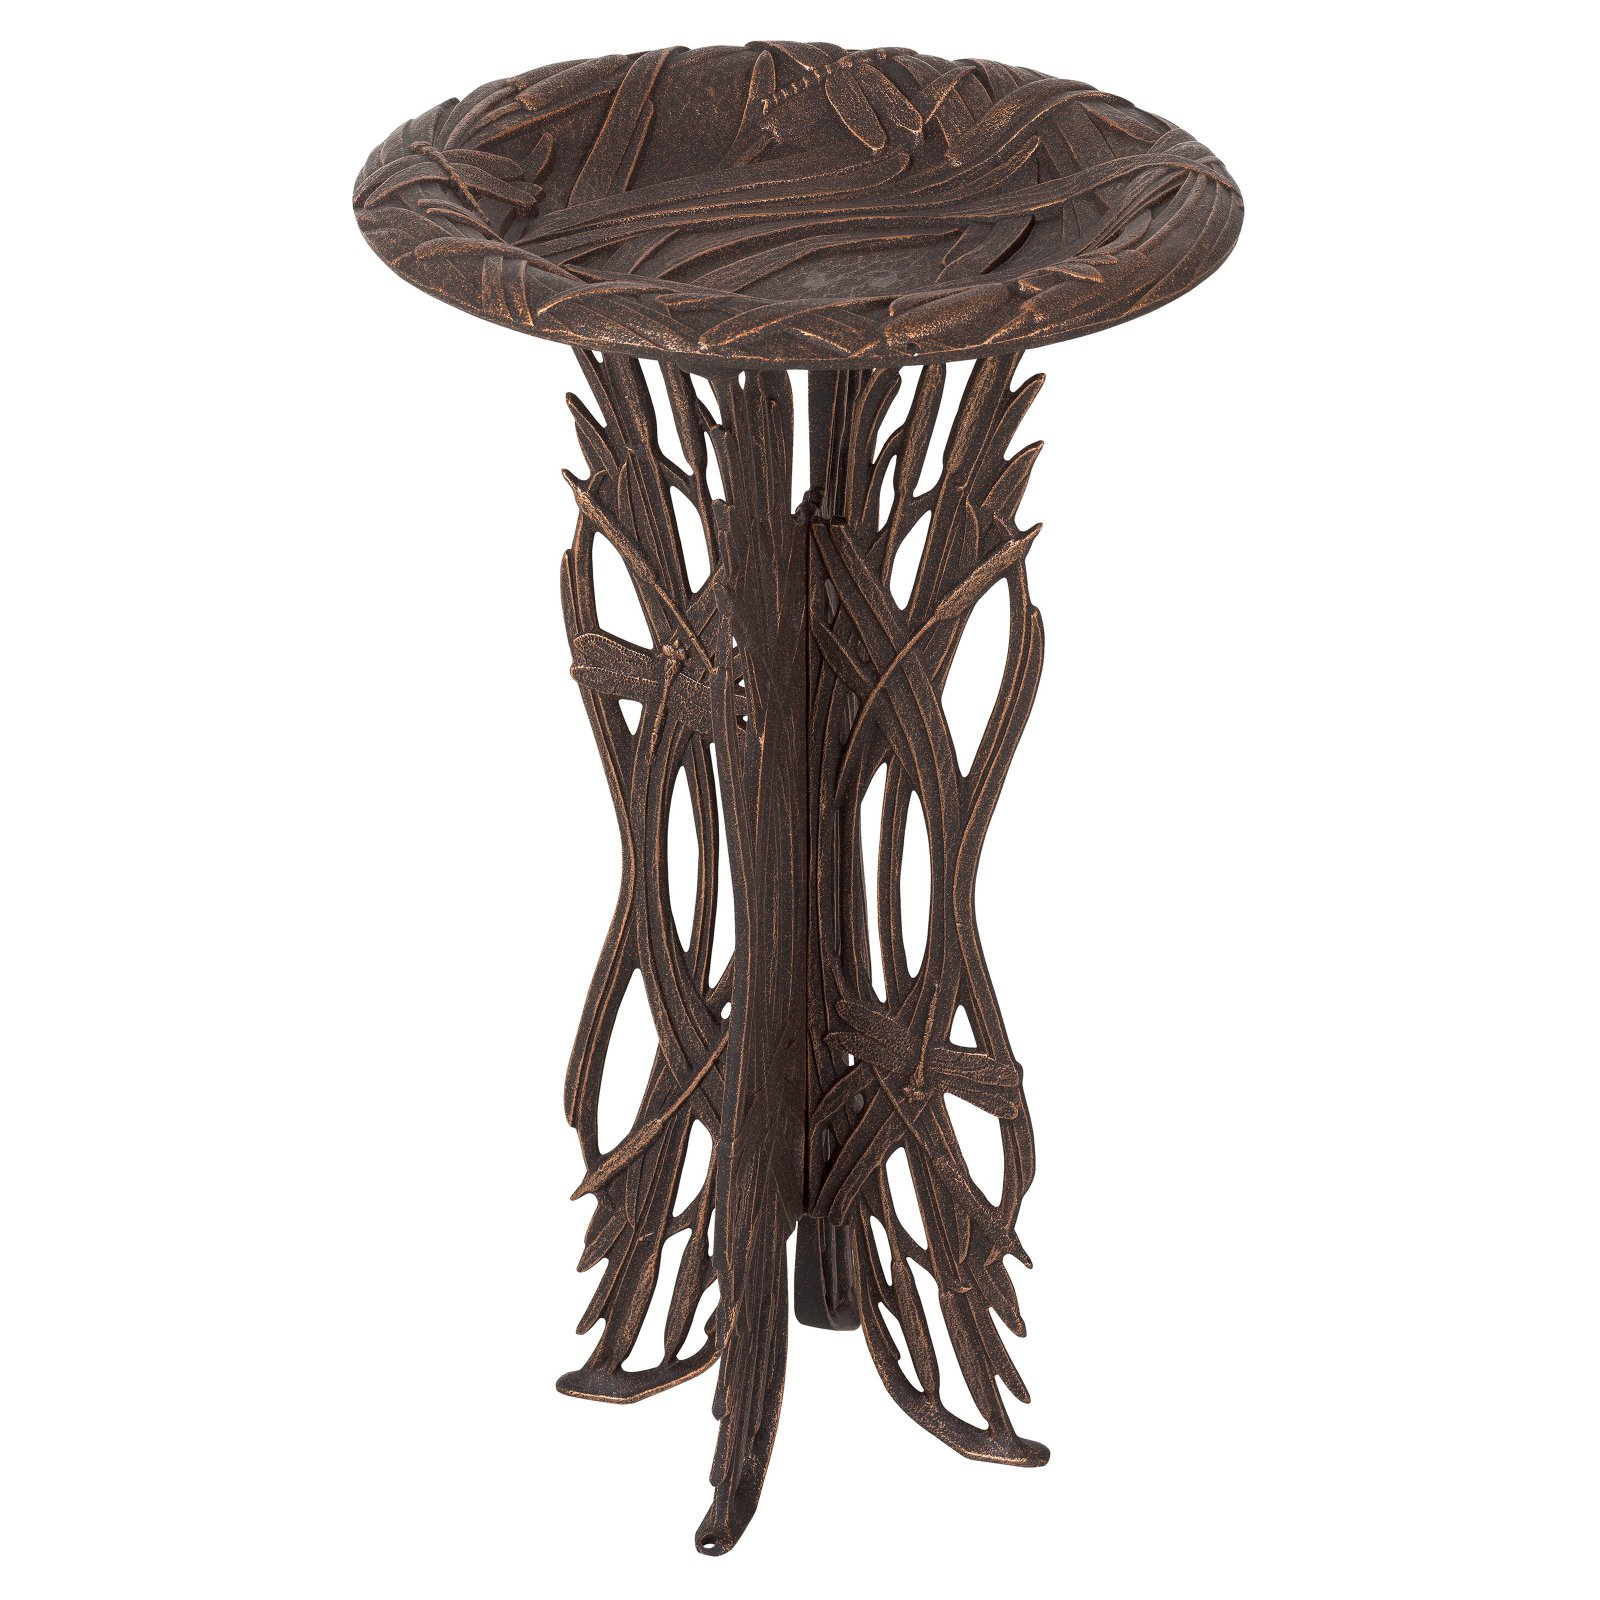 Whitehall Dragonfly Birdbath with Pedestal